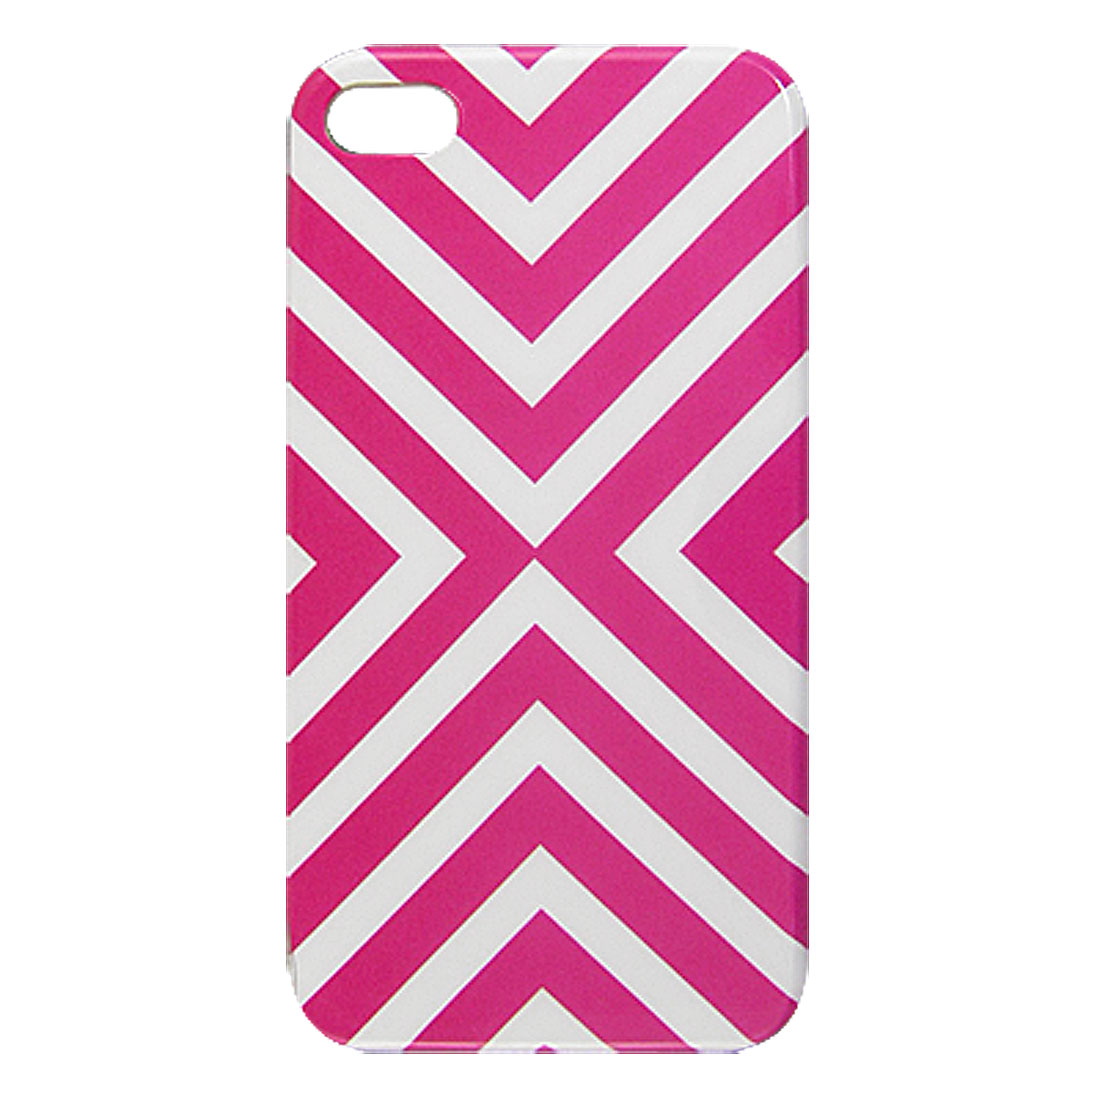 White Fuchisa Crossed Linellae Decor Hard Plastic IMD Back Case for iPhone 4 4G 4S